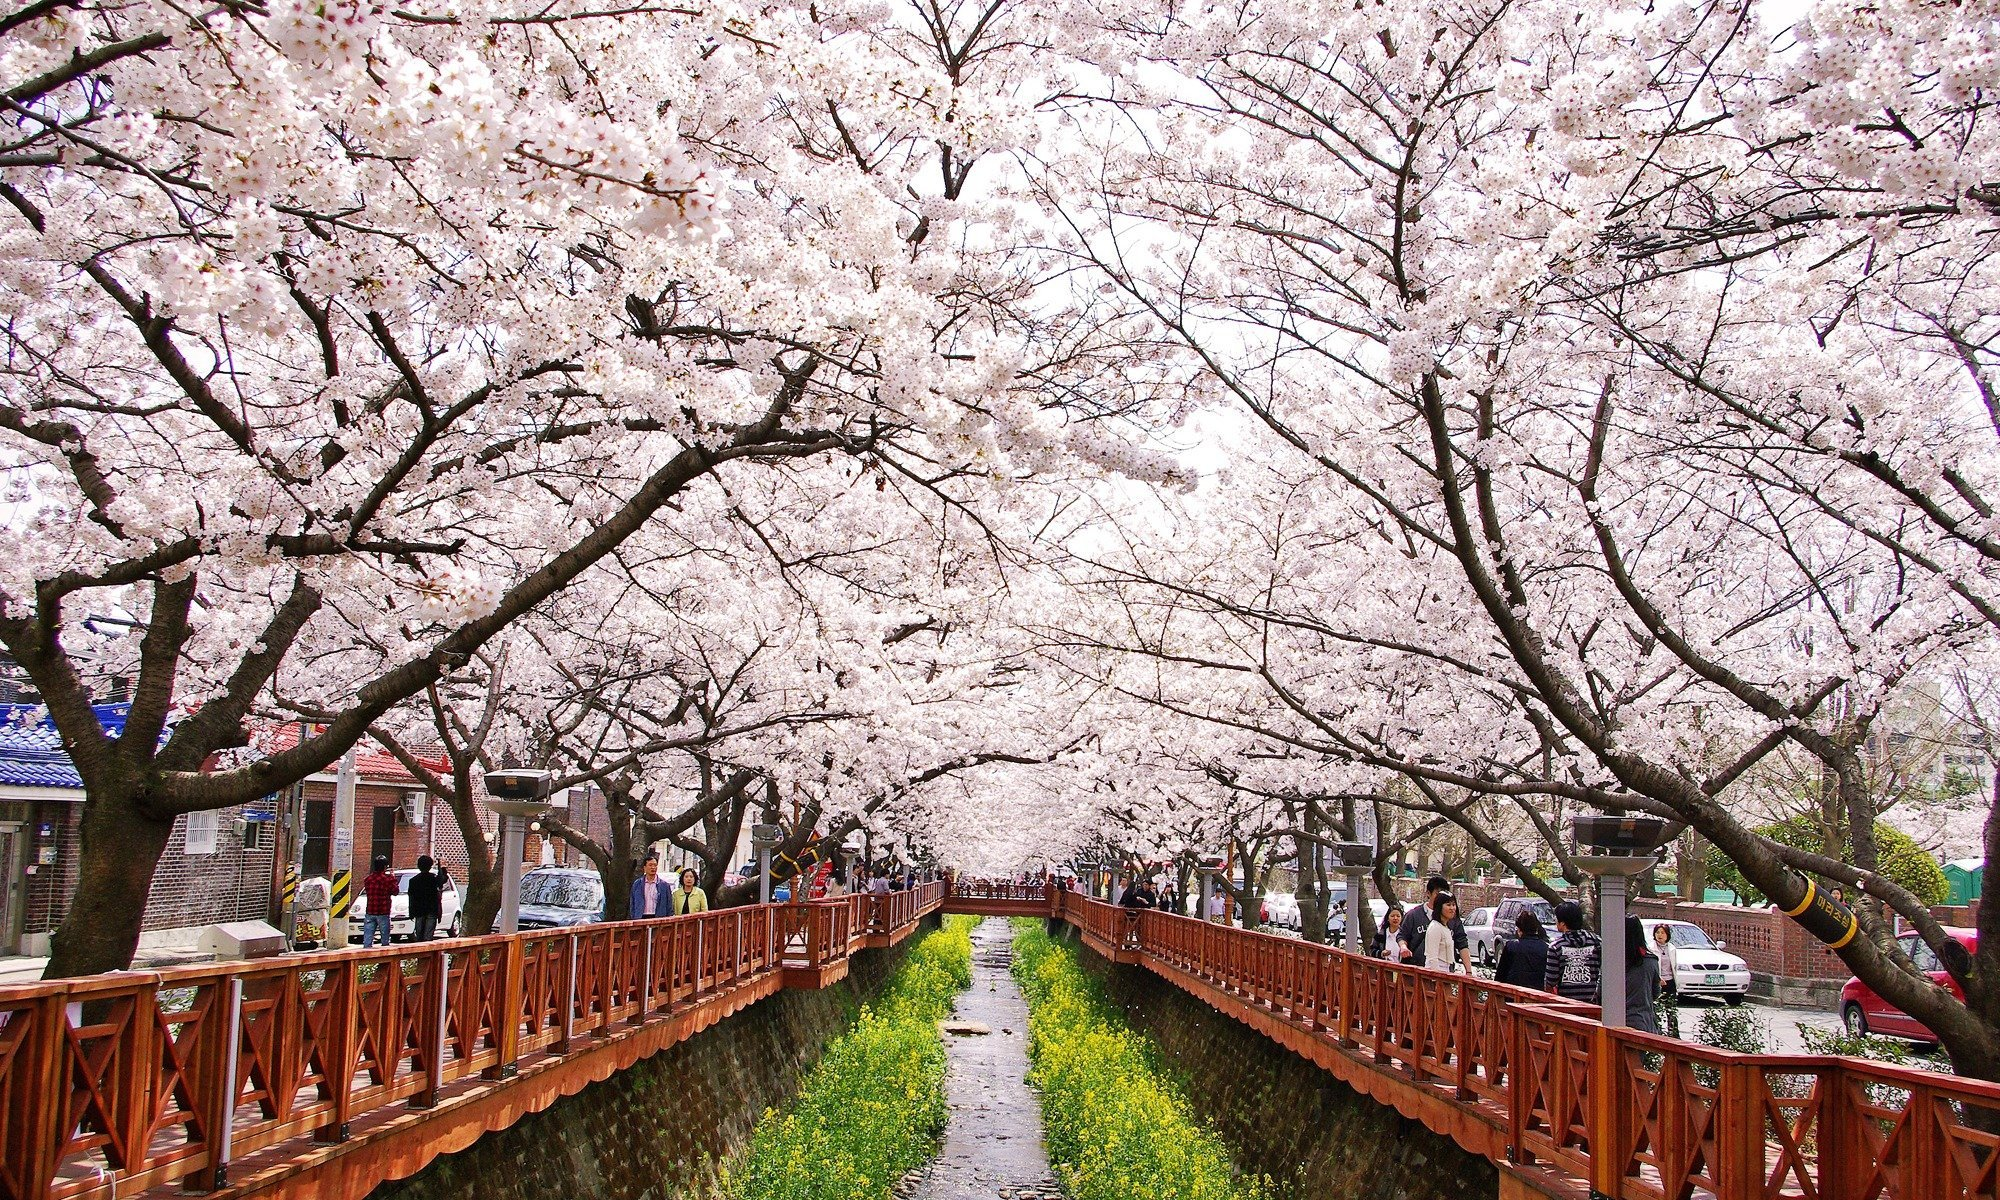 Spring in South Korea – when and where to see the cherry blossoms